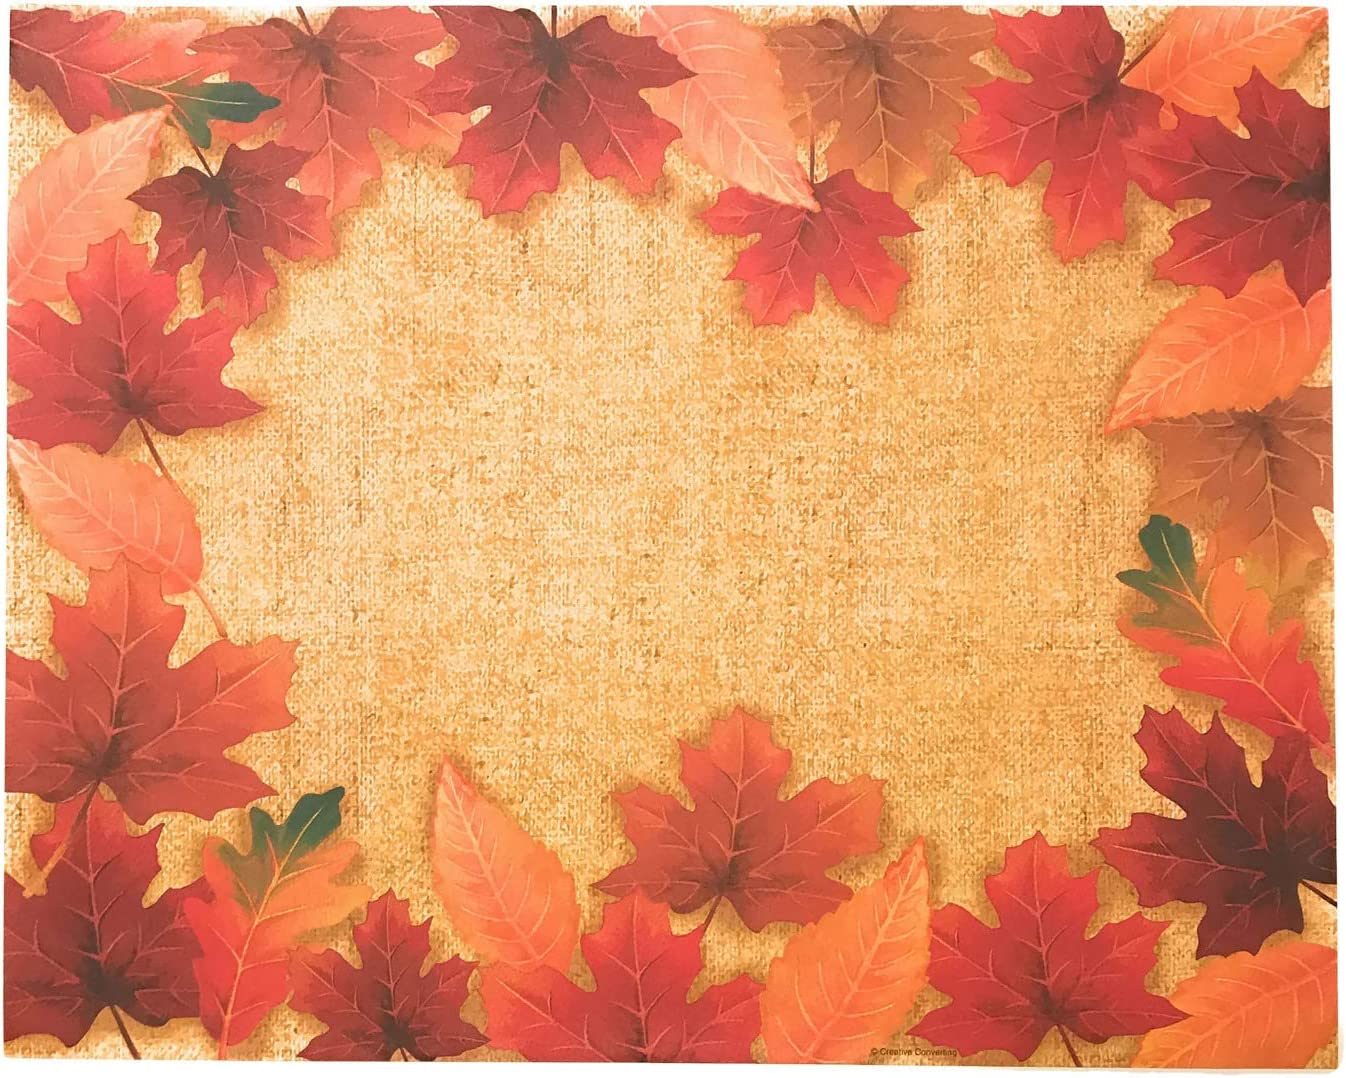 Autumn Decor Fall Maple Leaves Paper Placemats 36 Count Disposable Paper Placemats